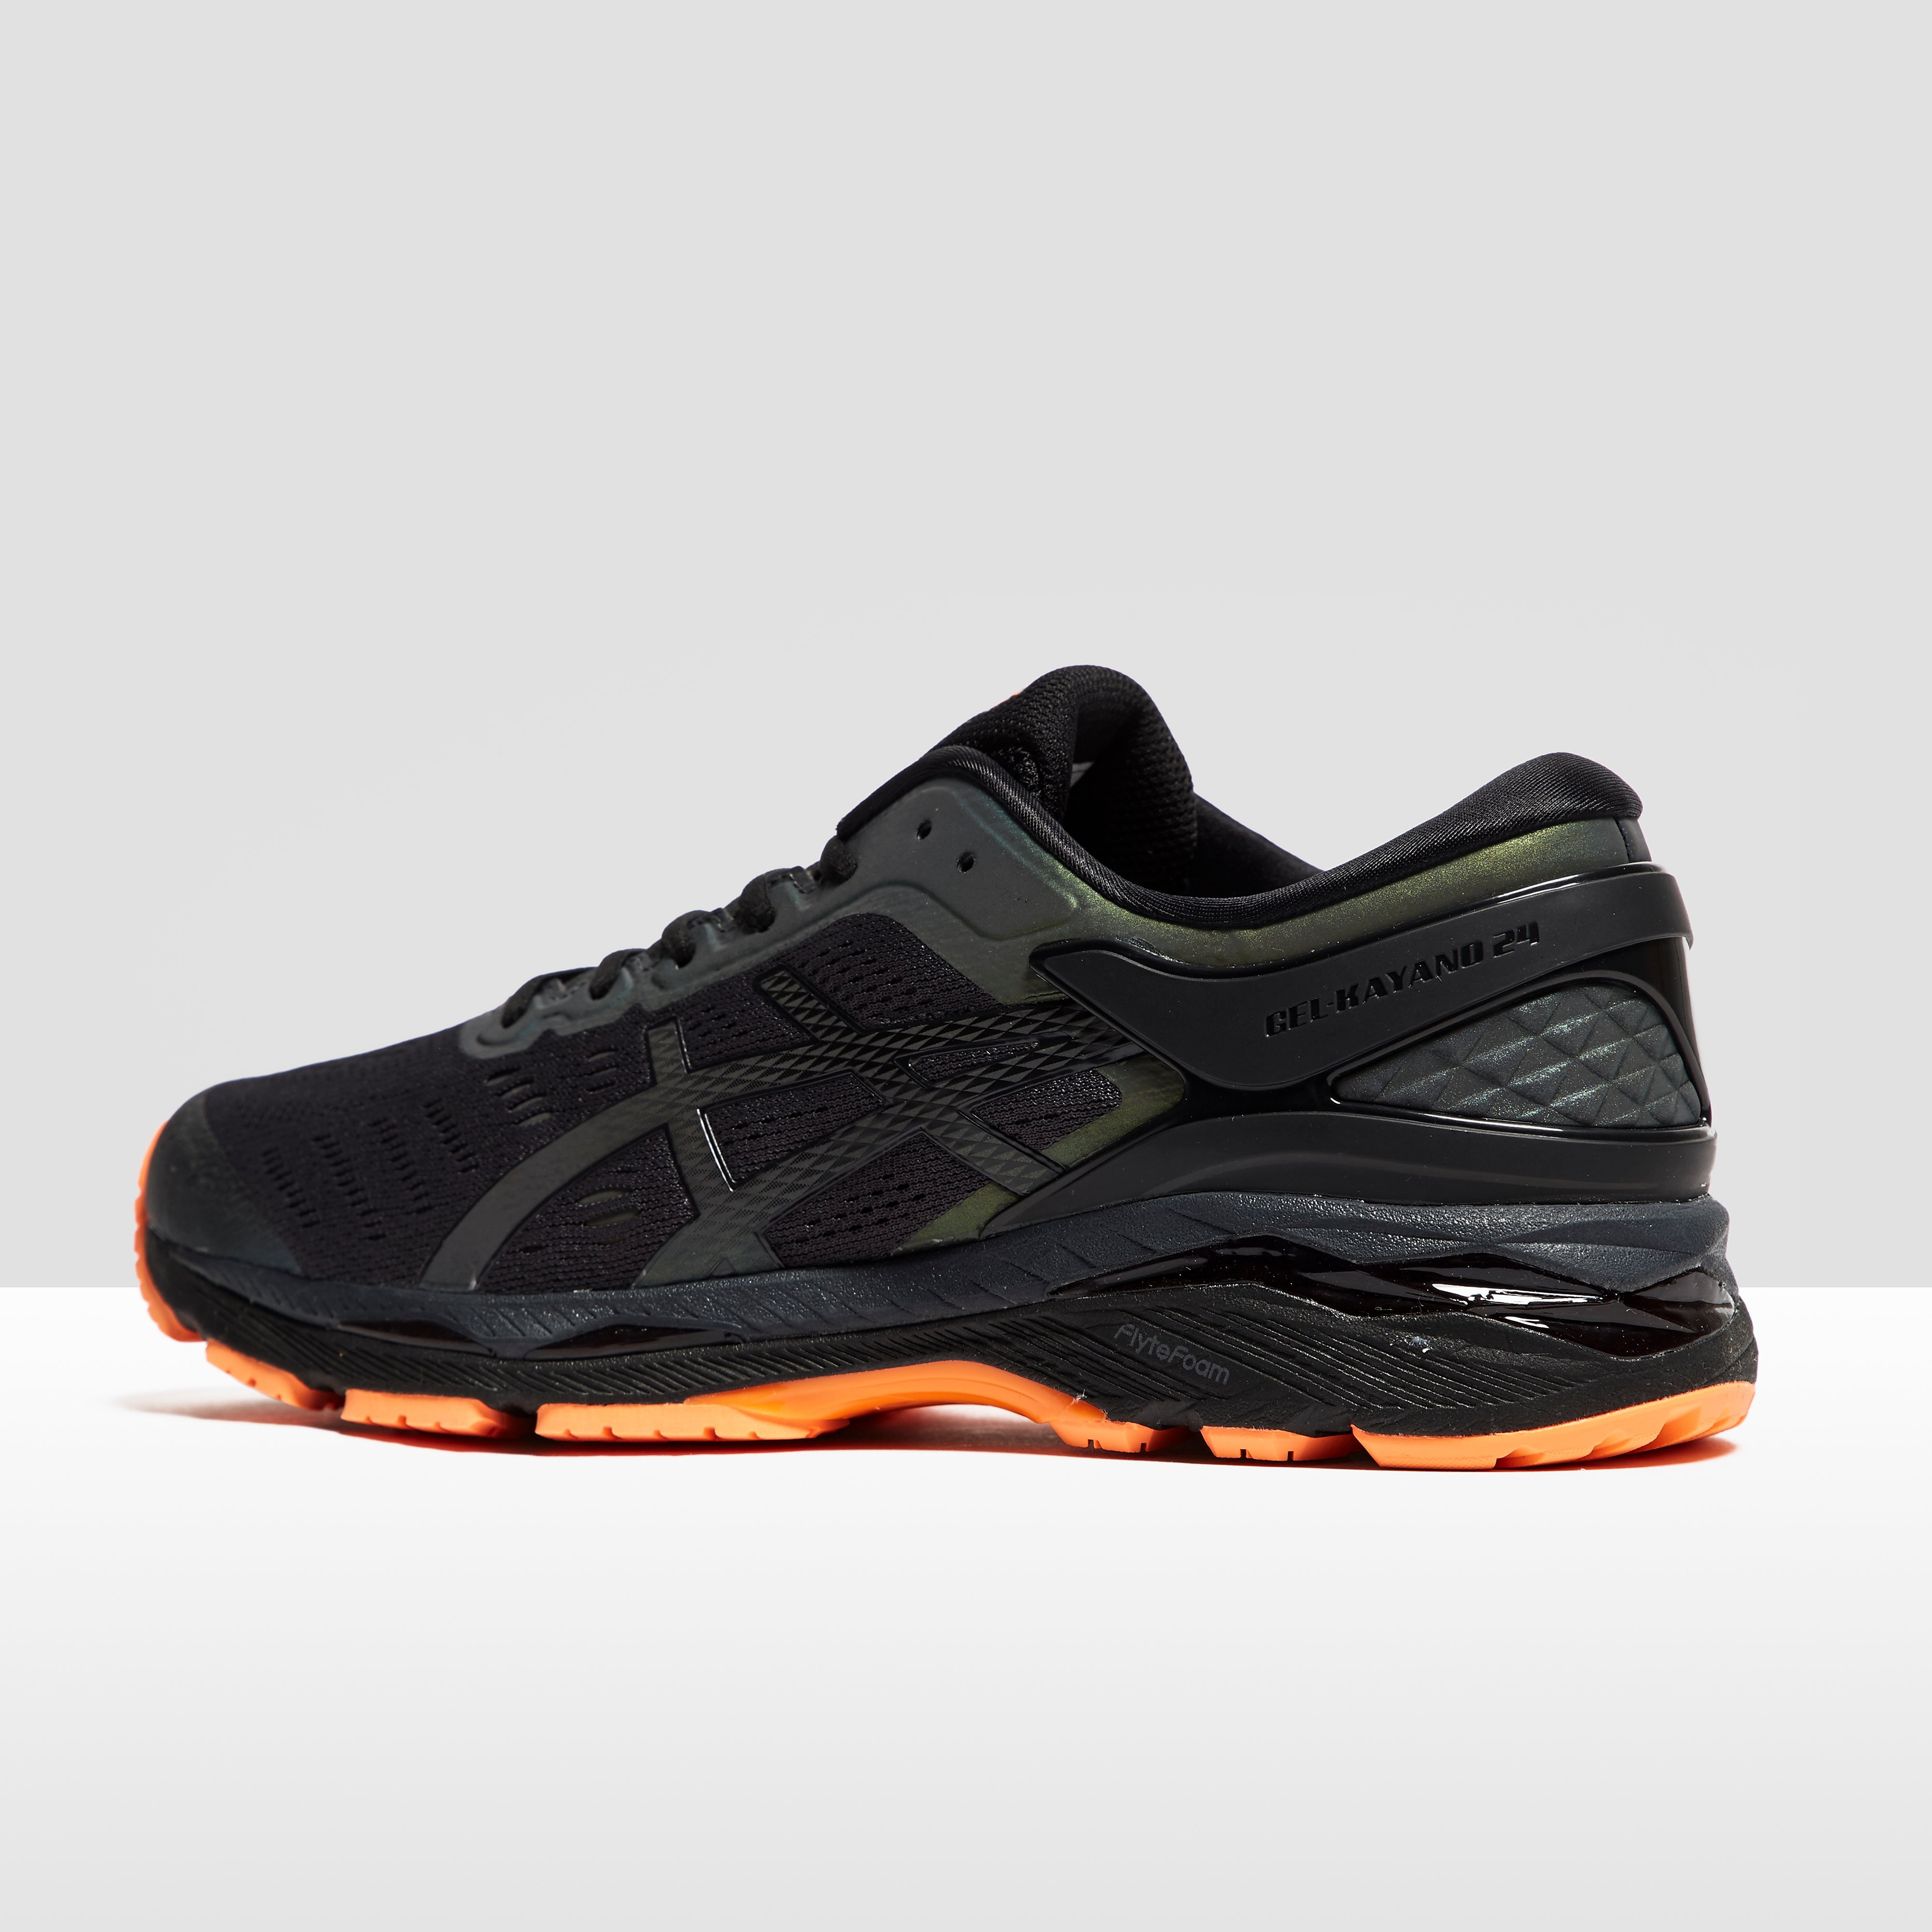 ASICS Gel Kayano 24 Lite Men's Running Shoes